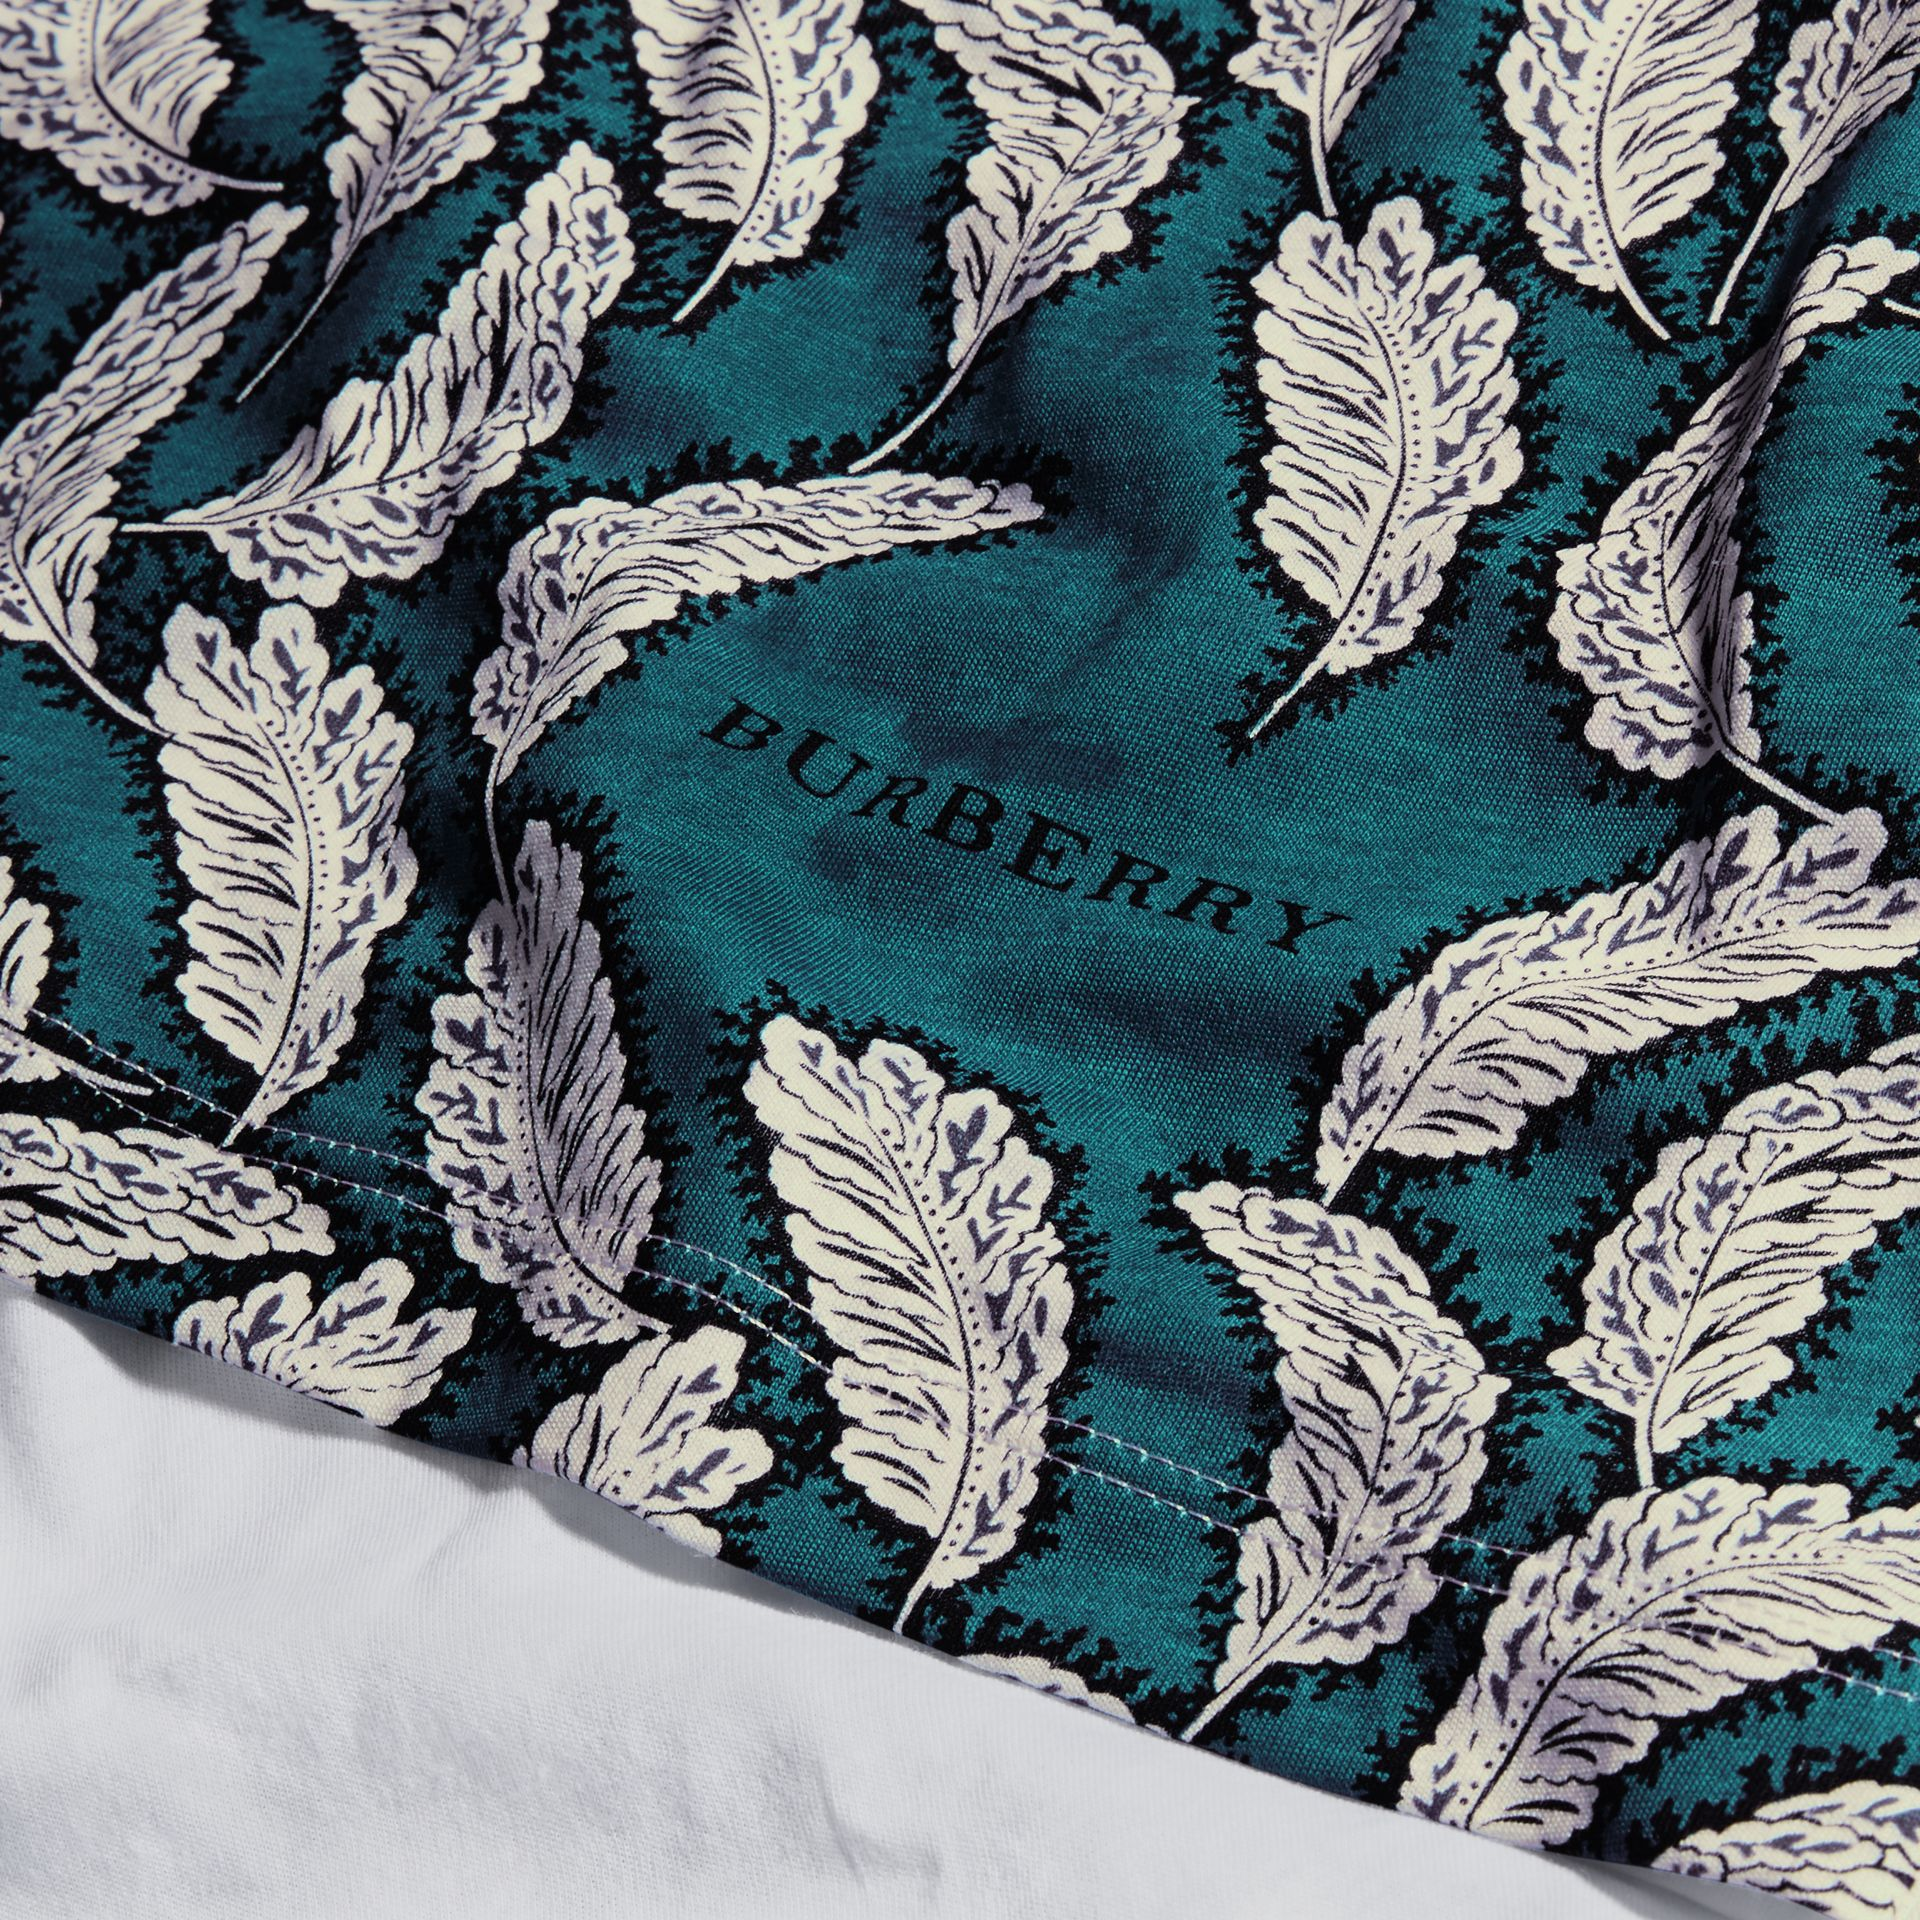 Teal blue Leaf Print Cotton T-shirt Teal Blue - gallery image 2